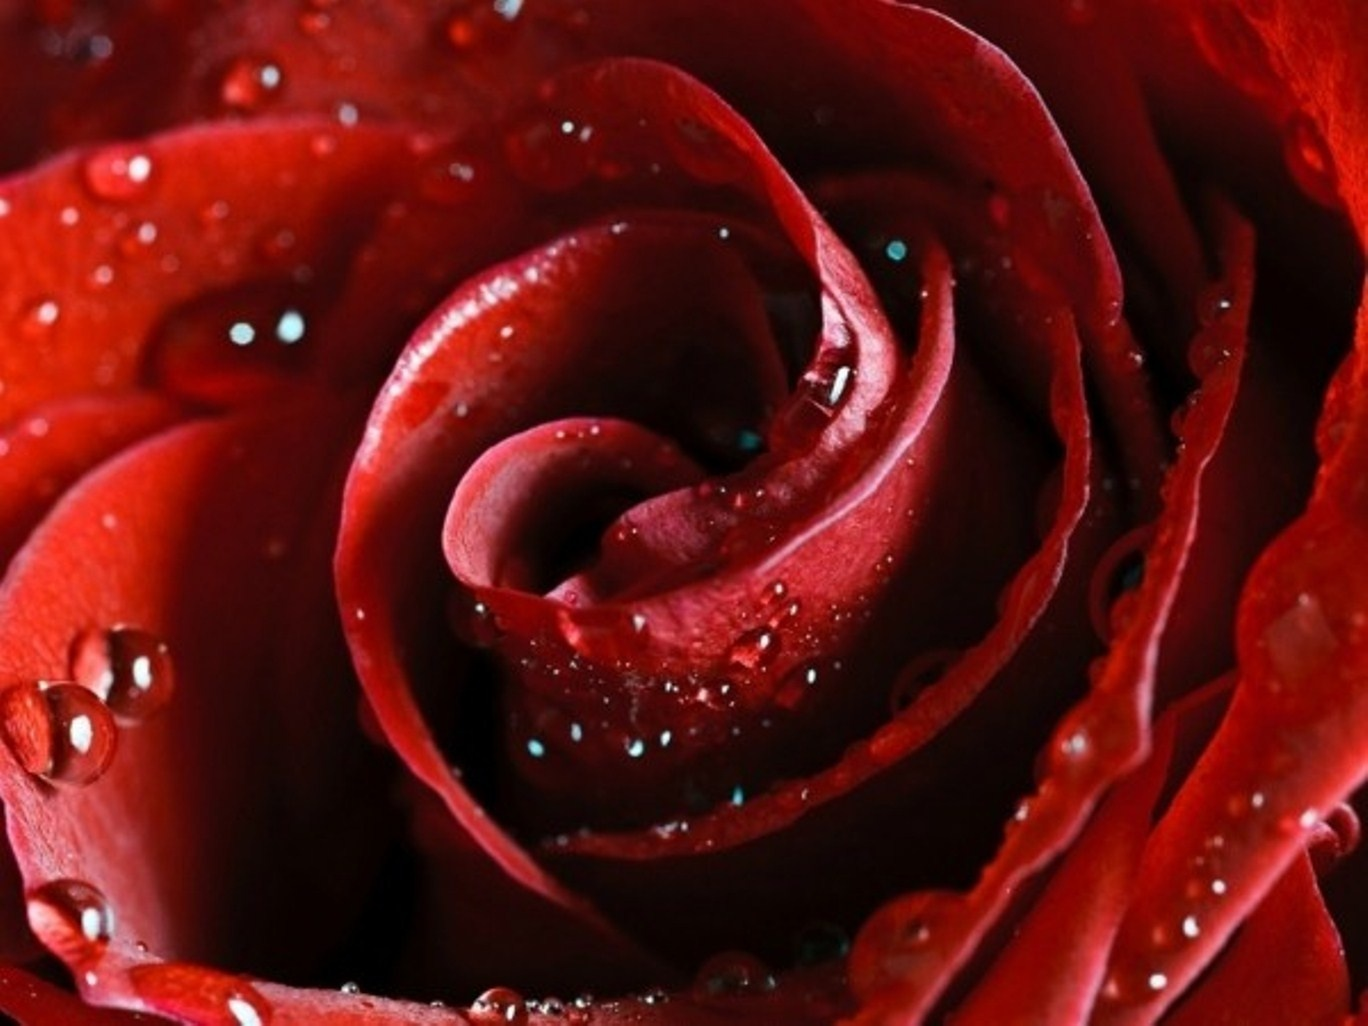 Wallpaper Rose Red Dew Drops On The Desktop